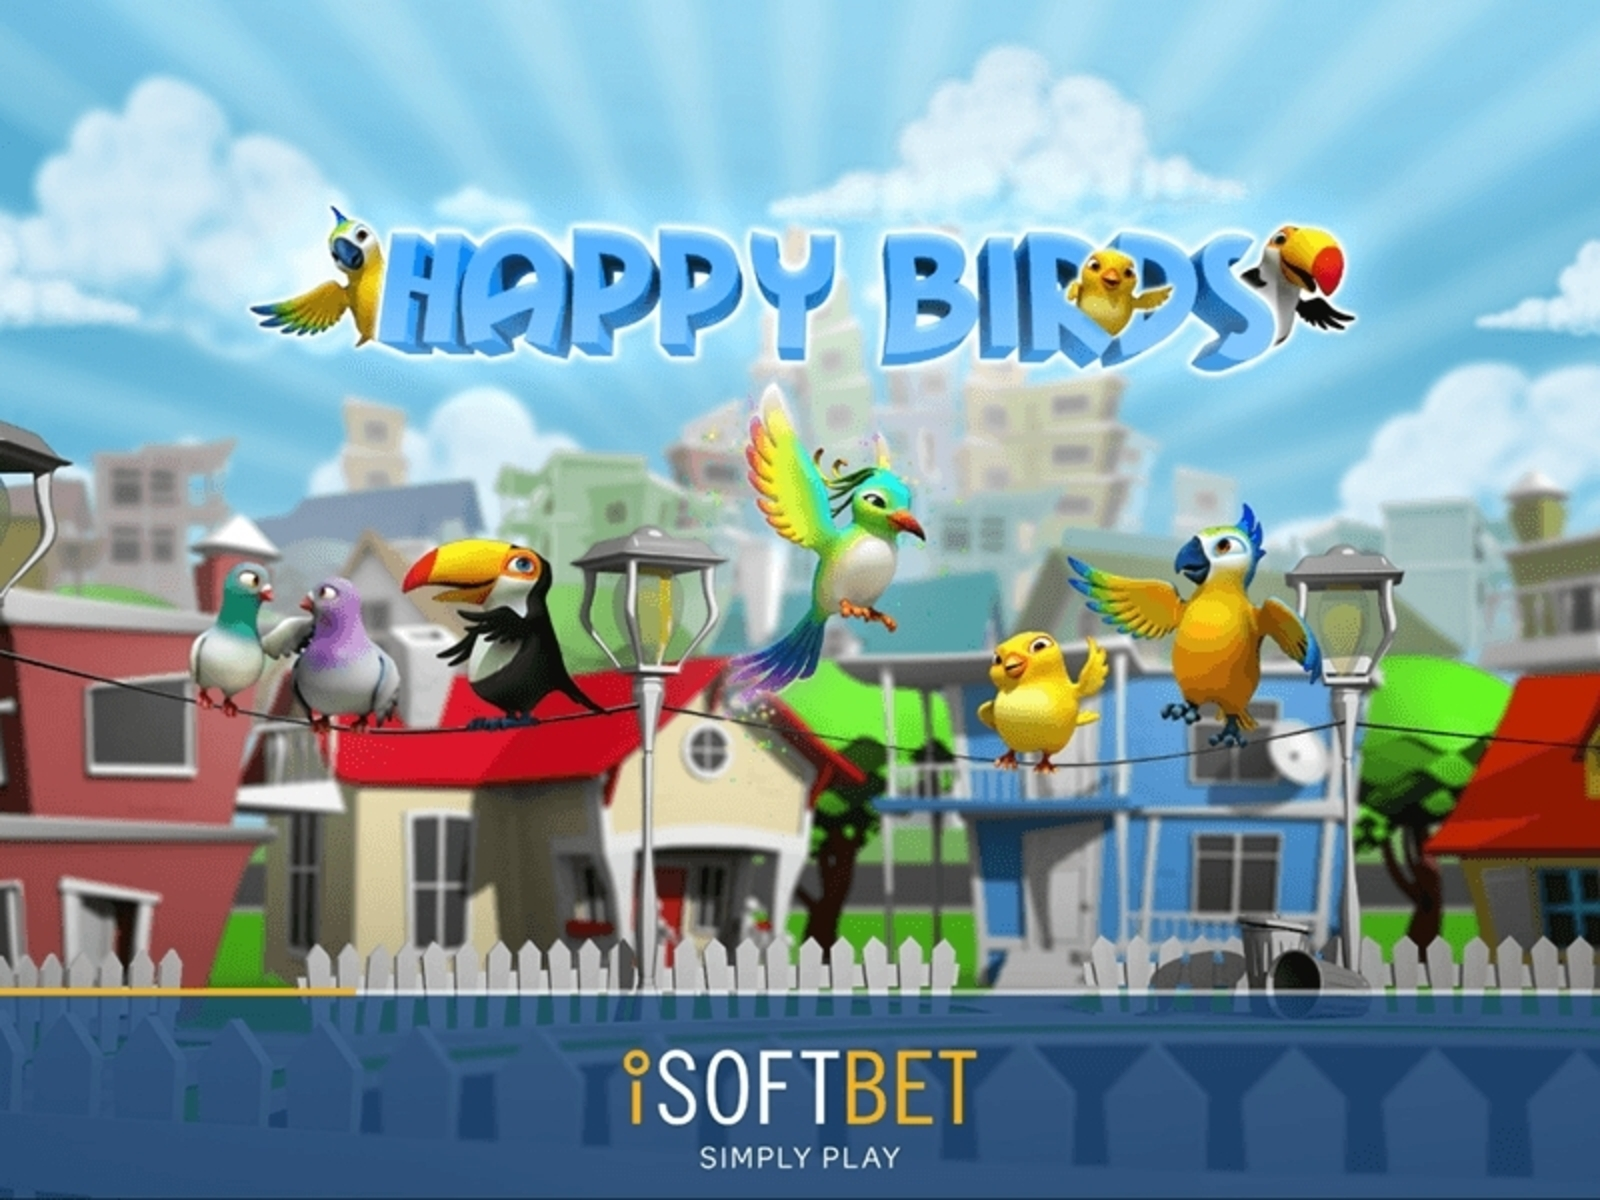 Happy Birds Online Slot Demo Game by iSoftBet